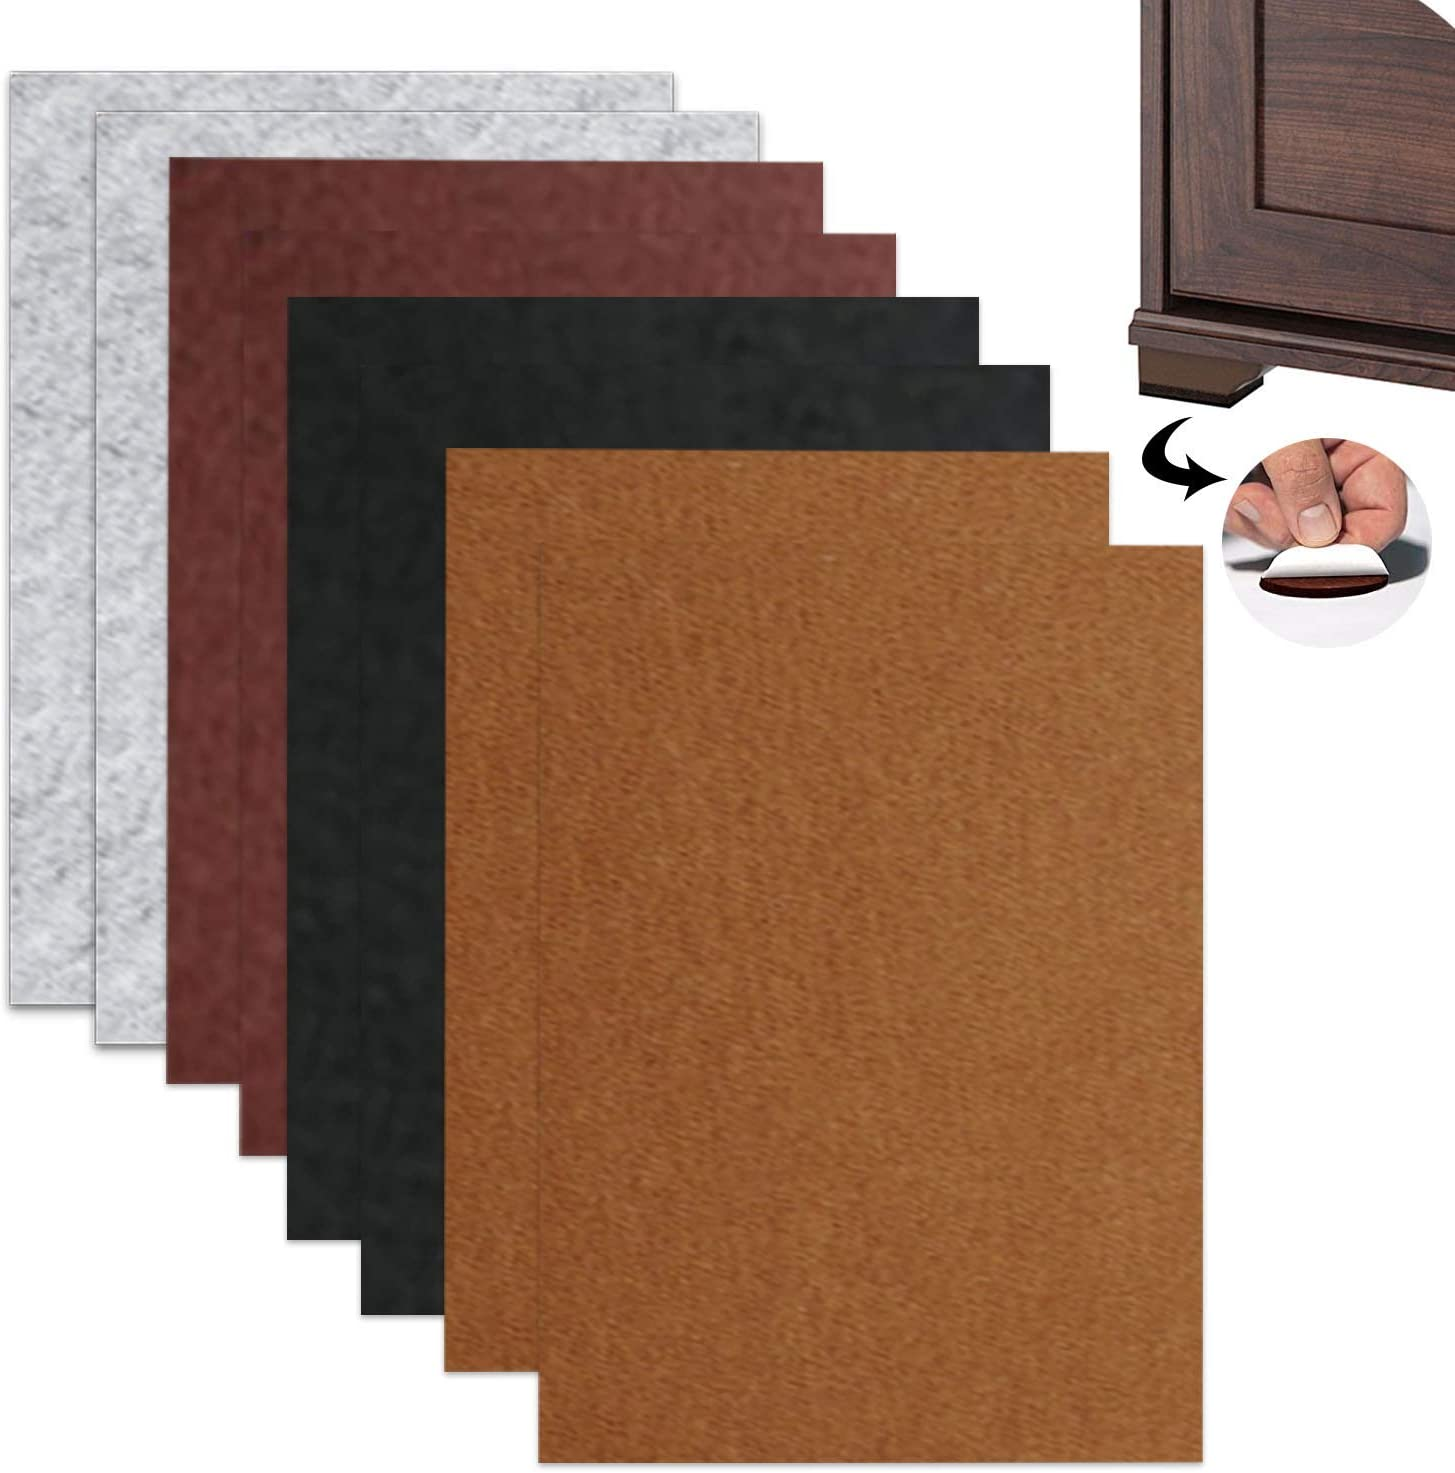 Furniture Felt Pad Self-Adhesive 11.88.62In 8Pcs, Furniture Non-Slip Self-Adhesive Mat, Furniture Floor Protector, Anti-Scratch Floor Protection Mat for Furniture Legs ,Larger Area and More Freer Use